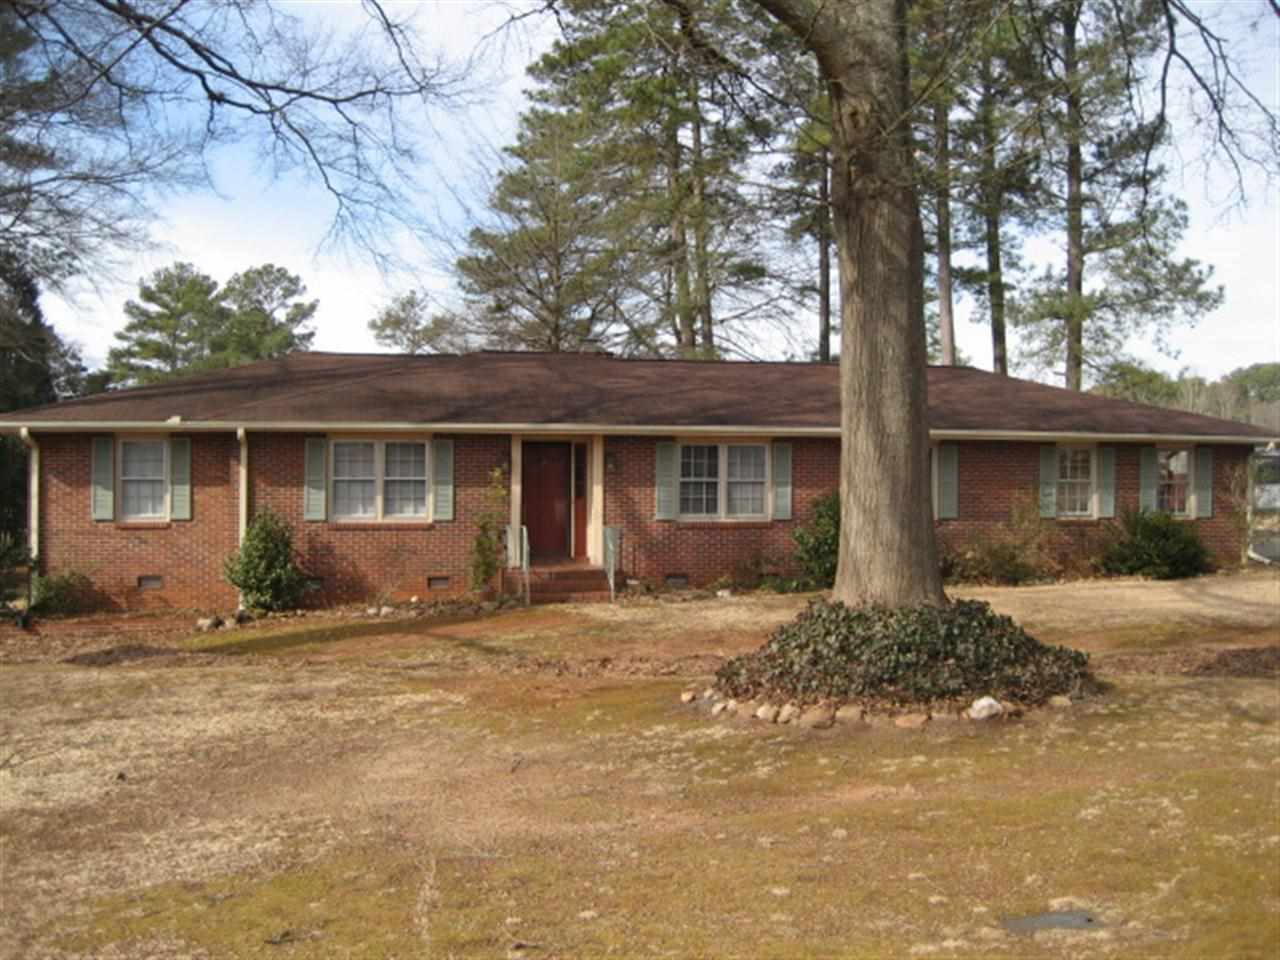 Rental Homes for Rent, ListingId:26947715, location: 506 Loblolly Drive Anderson 29625